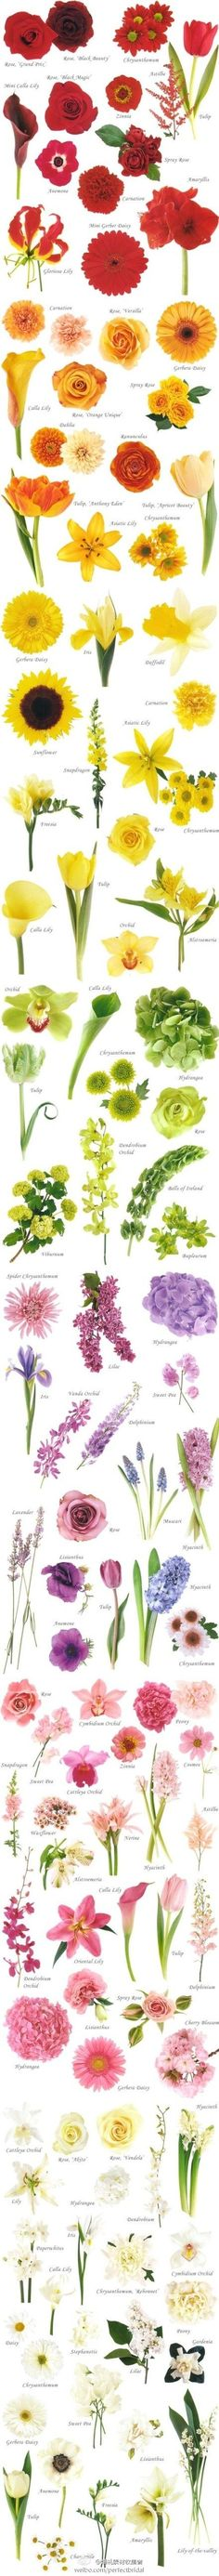 Flower Chart. You'll be glad you pinned this when it comes time